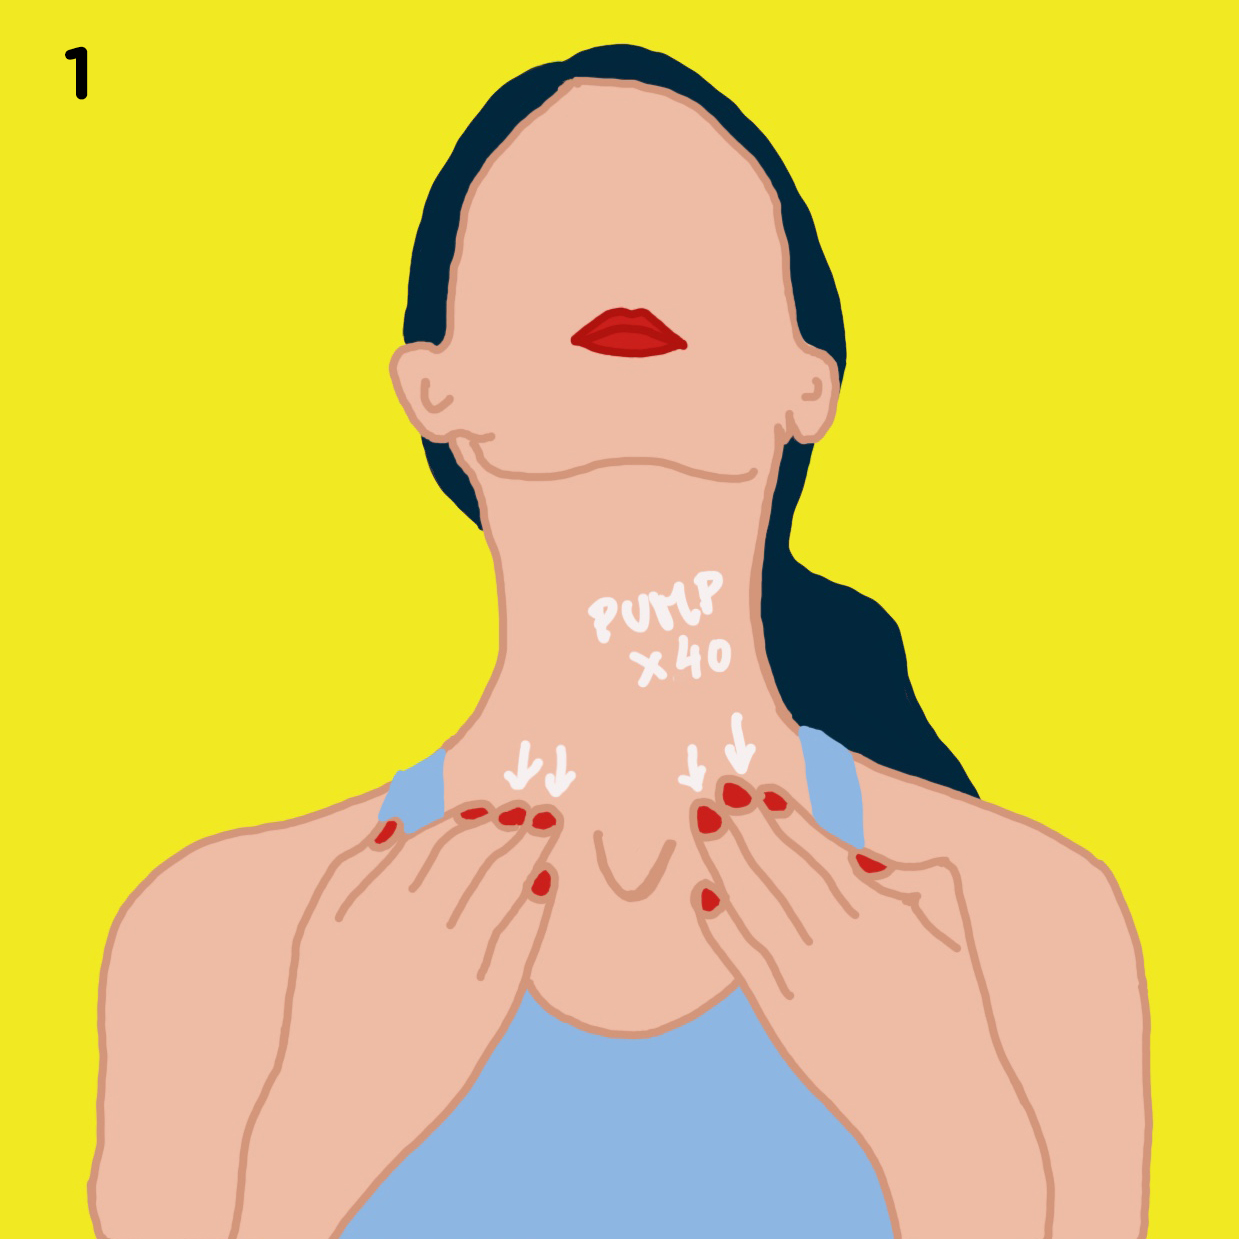 1. START AT THE BASE OF YOUR NECK   Apply & rub any face oil into the palms of your hands. Now place your 3 middle fingers in the soft tissue right above each side of your collar bone, right where your neck and your color bone meet, and slowly pump 40 times. Again, don't press hard or go too quickly here, it's a soft practice.